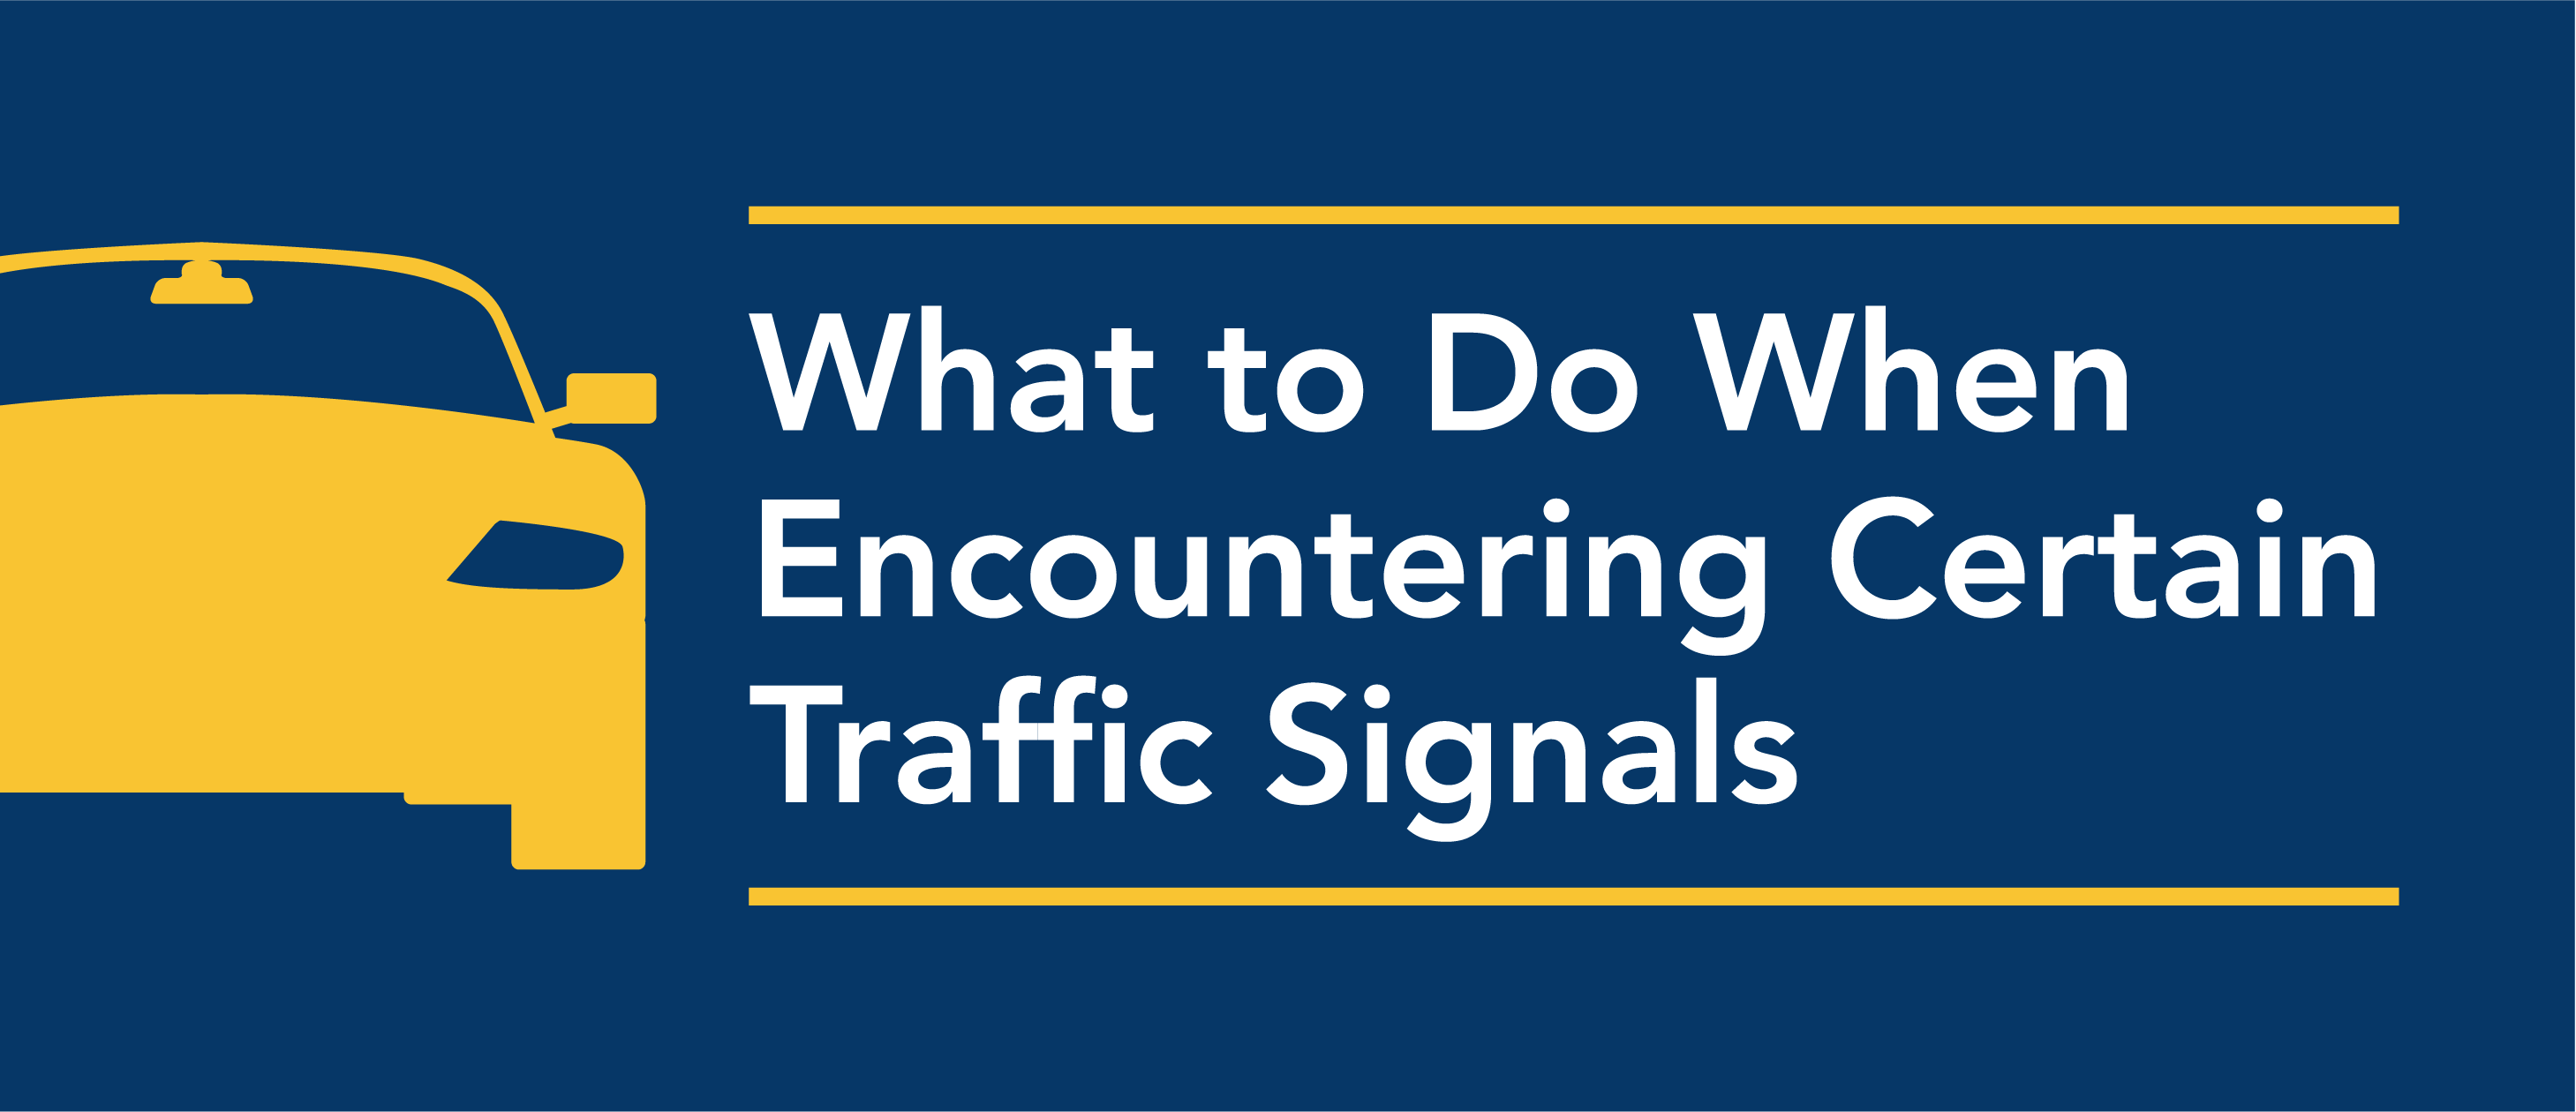 what to do when encountering traffic signals